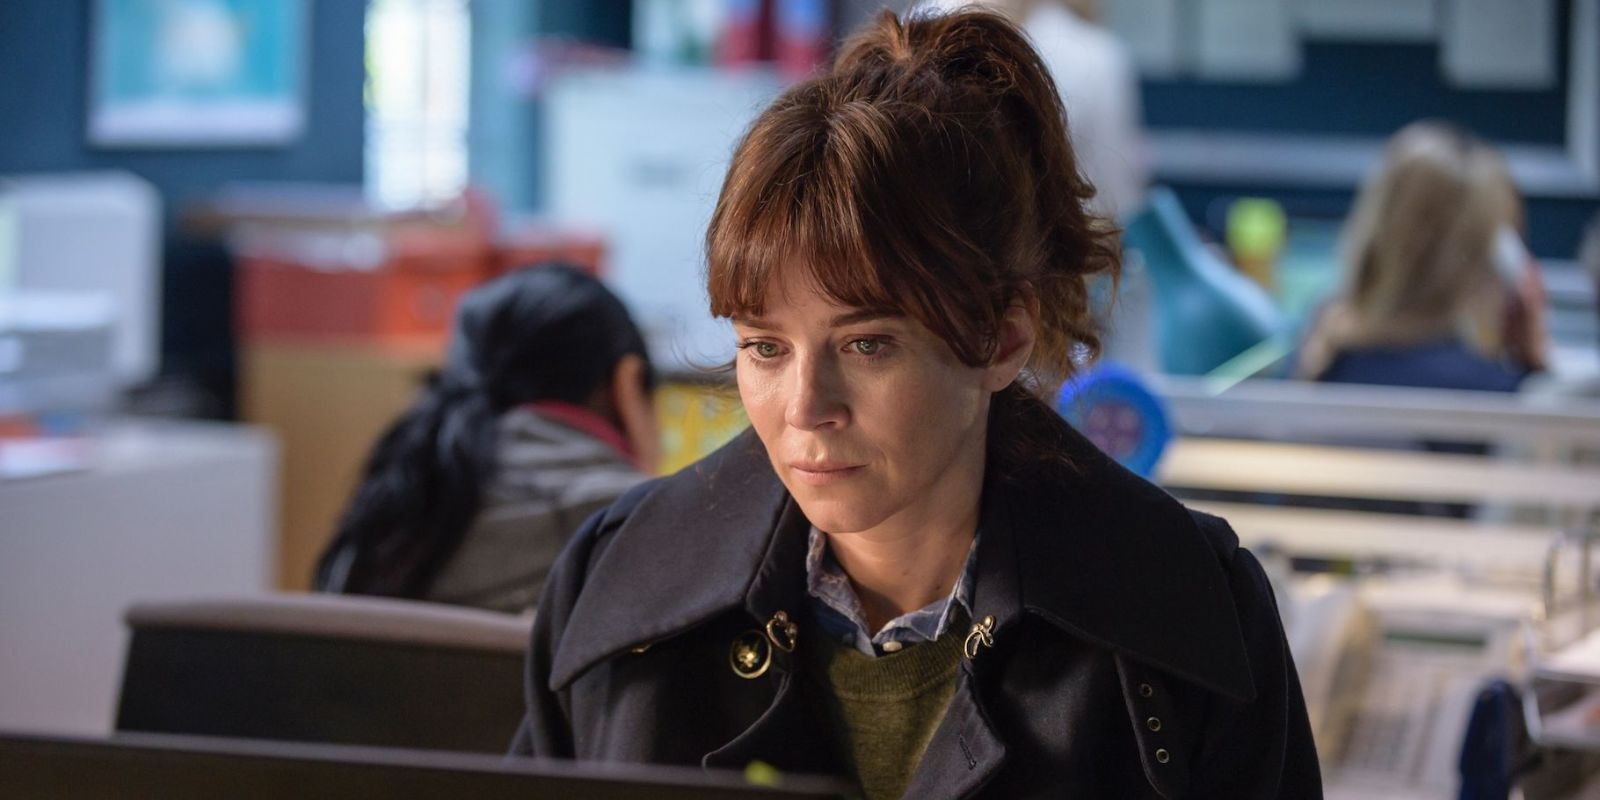 Does Marcella finally give us some answers, or does it just ask more questions?